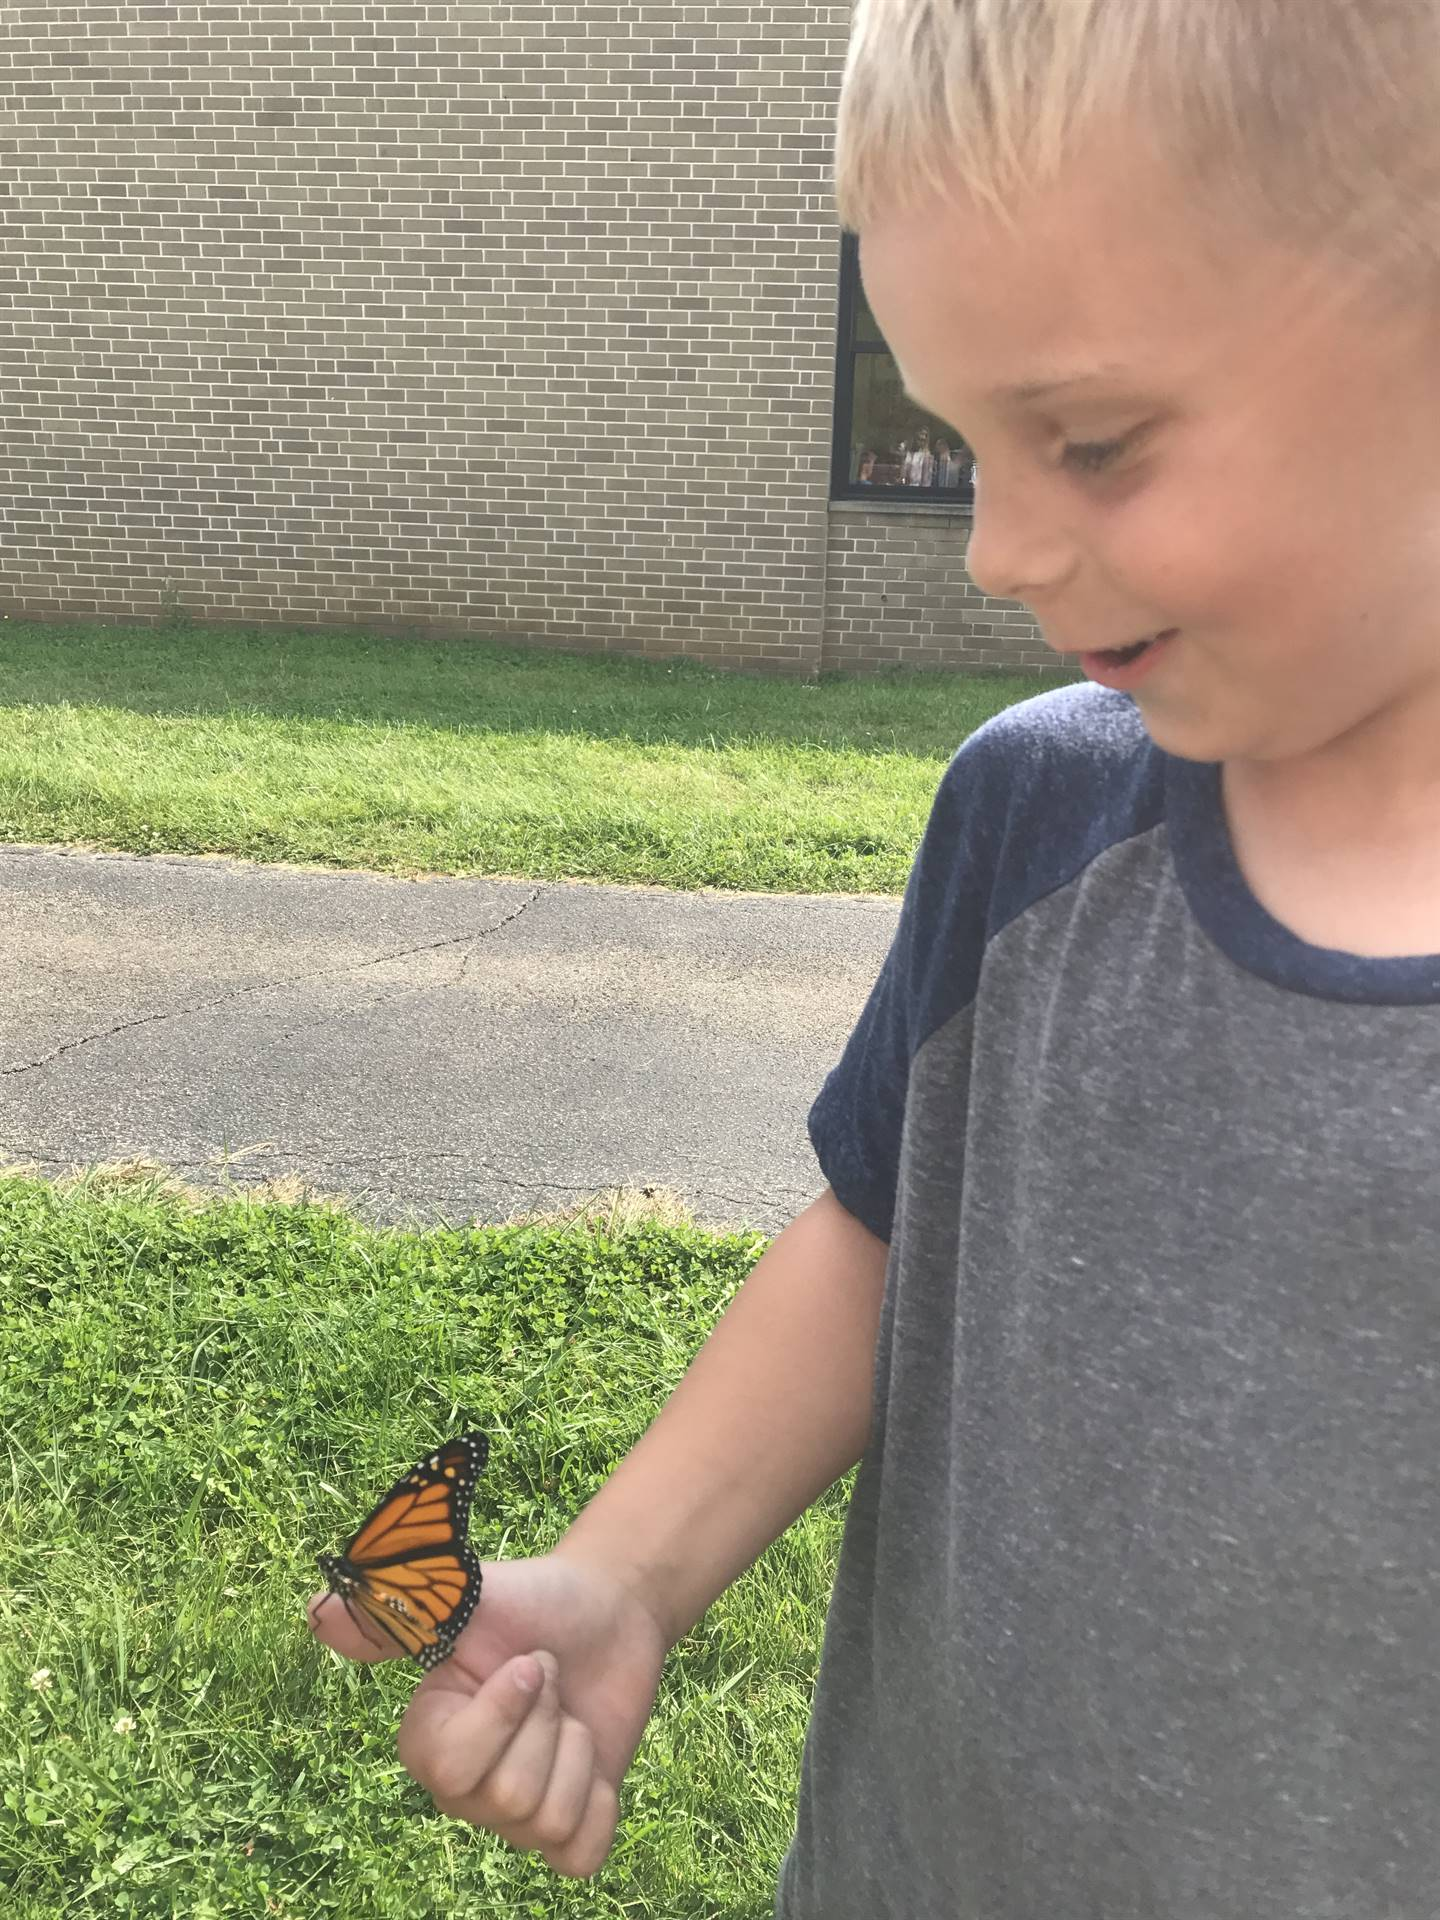 Every Penn student got a chance to hold the butterfly before it was released